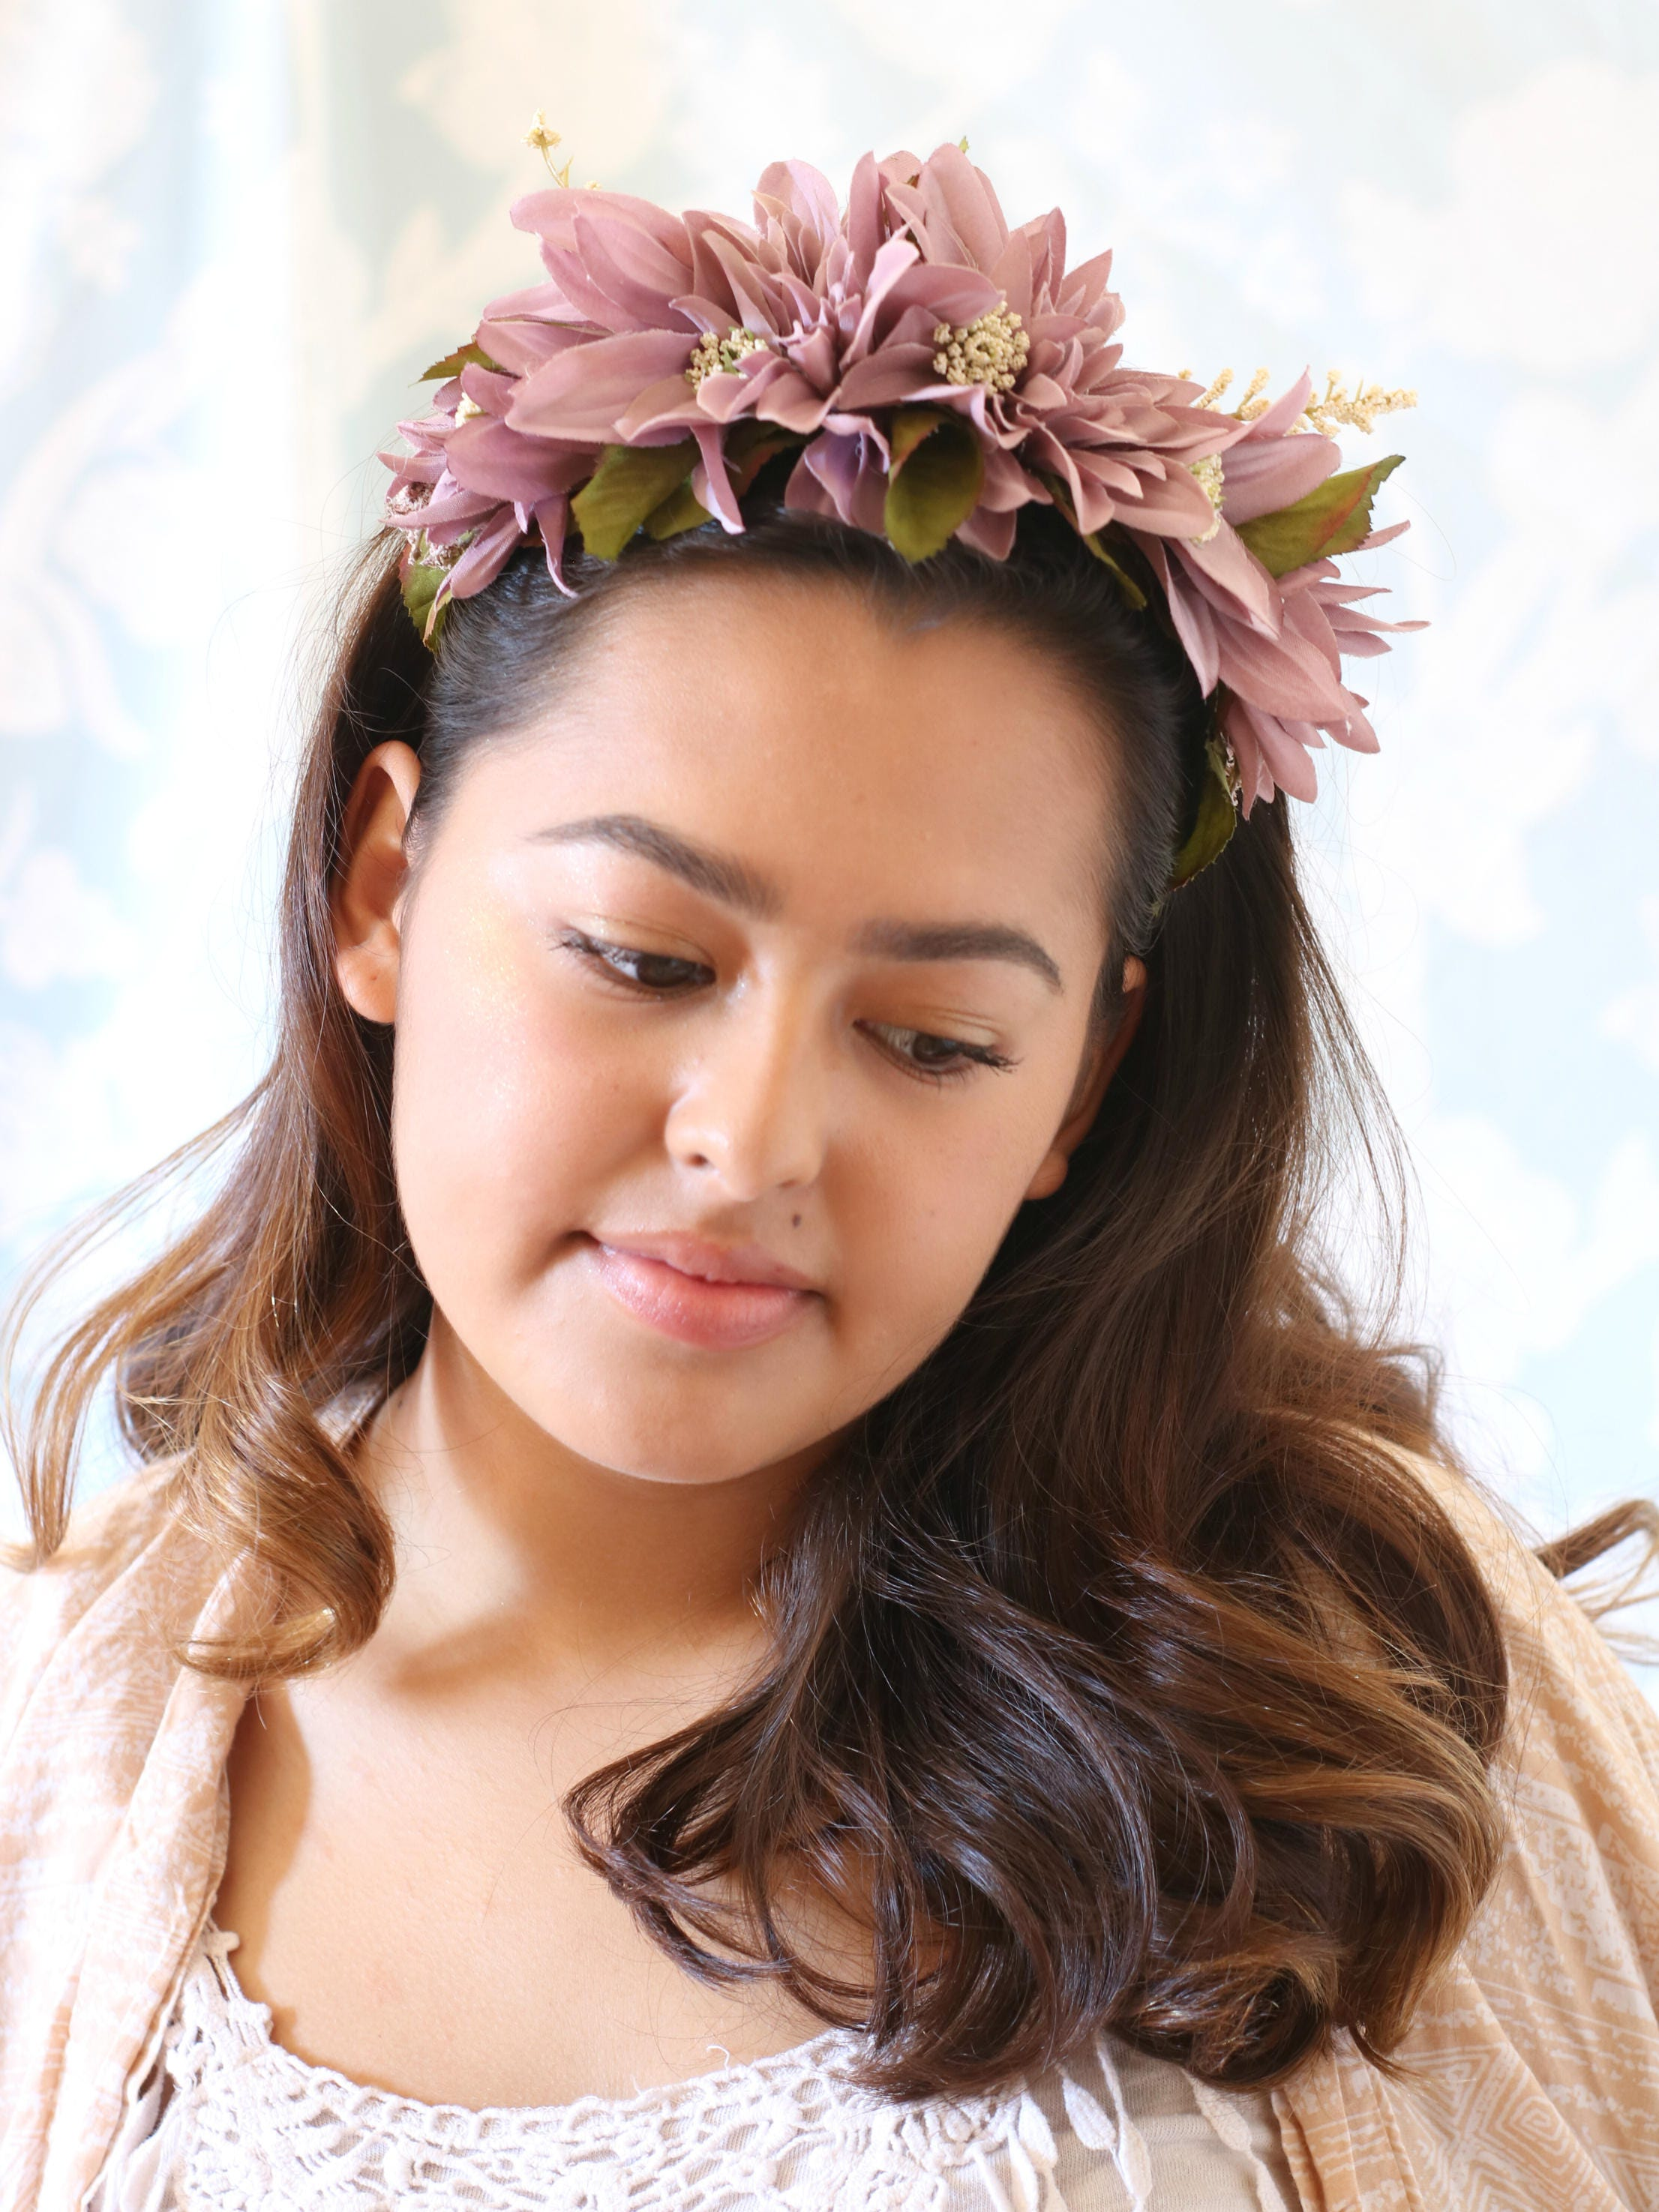 Flower Crown Silk Flower Crown Reversible Headband Frida Kahlo